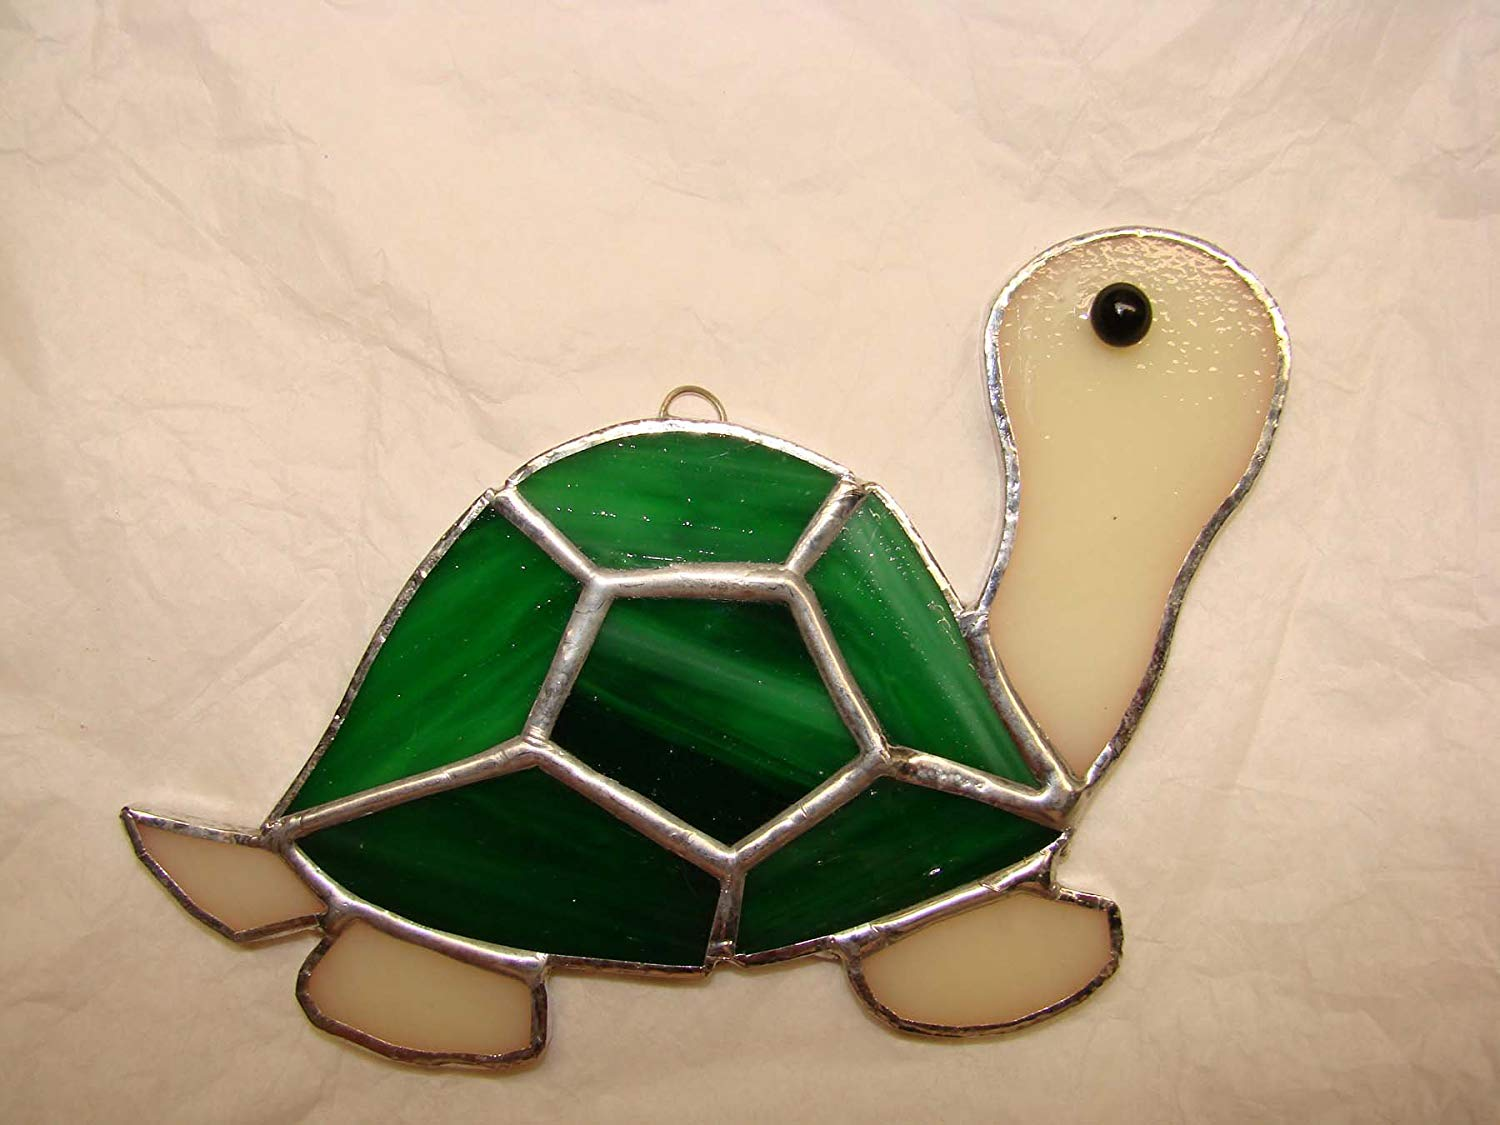 Small Bright Green Turtle Handmade Stained Glass Ornament or Sun Catcher